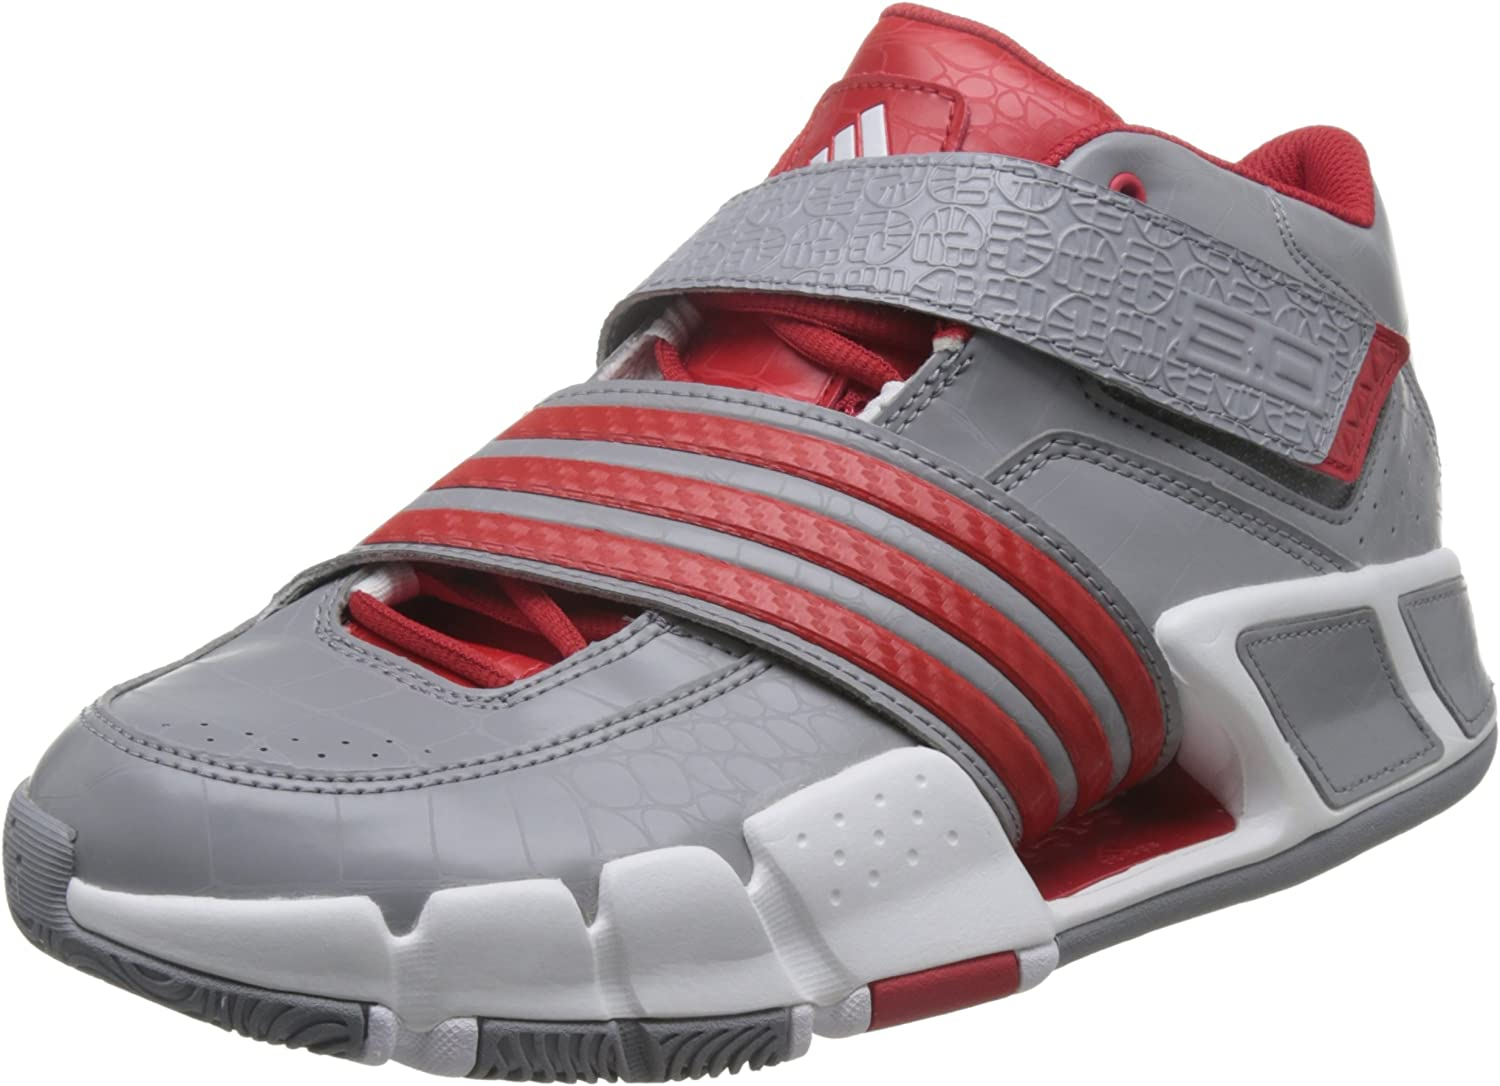 adidas Chaussure Basketball Pilrahna III 2 Couleurs D69561. Taille ...